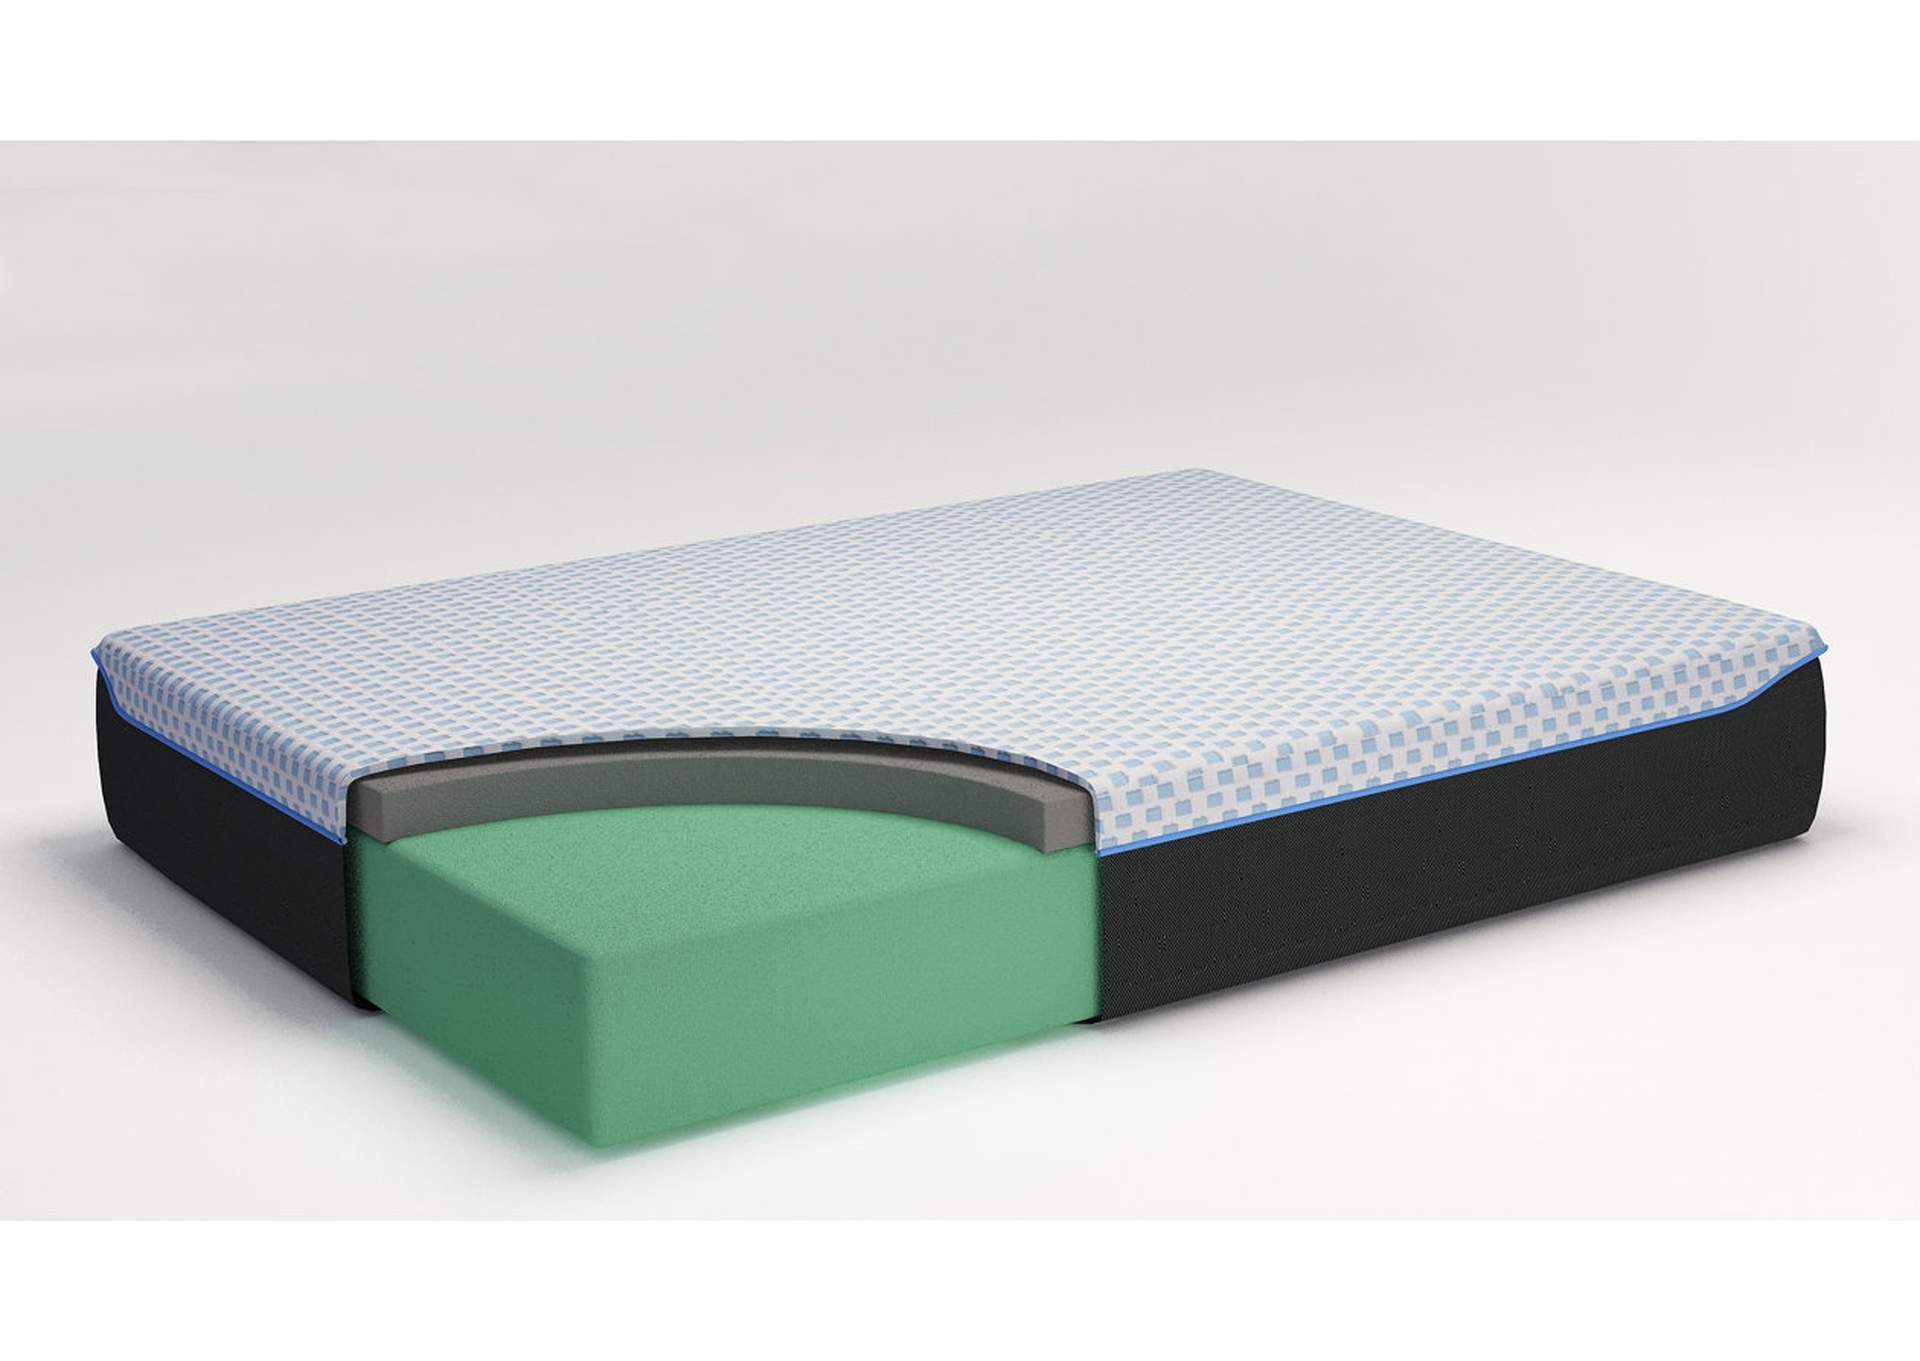 Chime Elite 12 Inch Memory Foam Full Mattress,Direct To Consumer Express